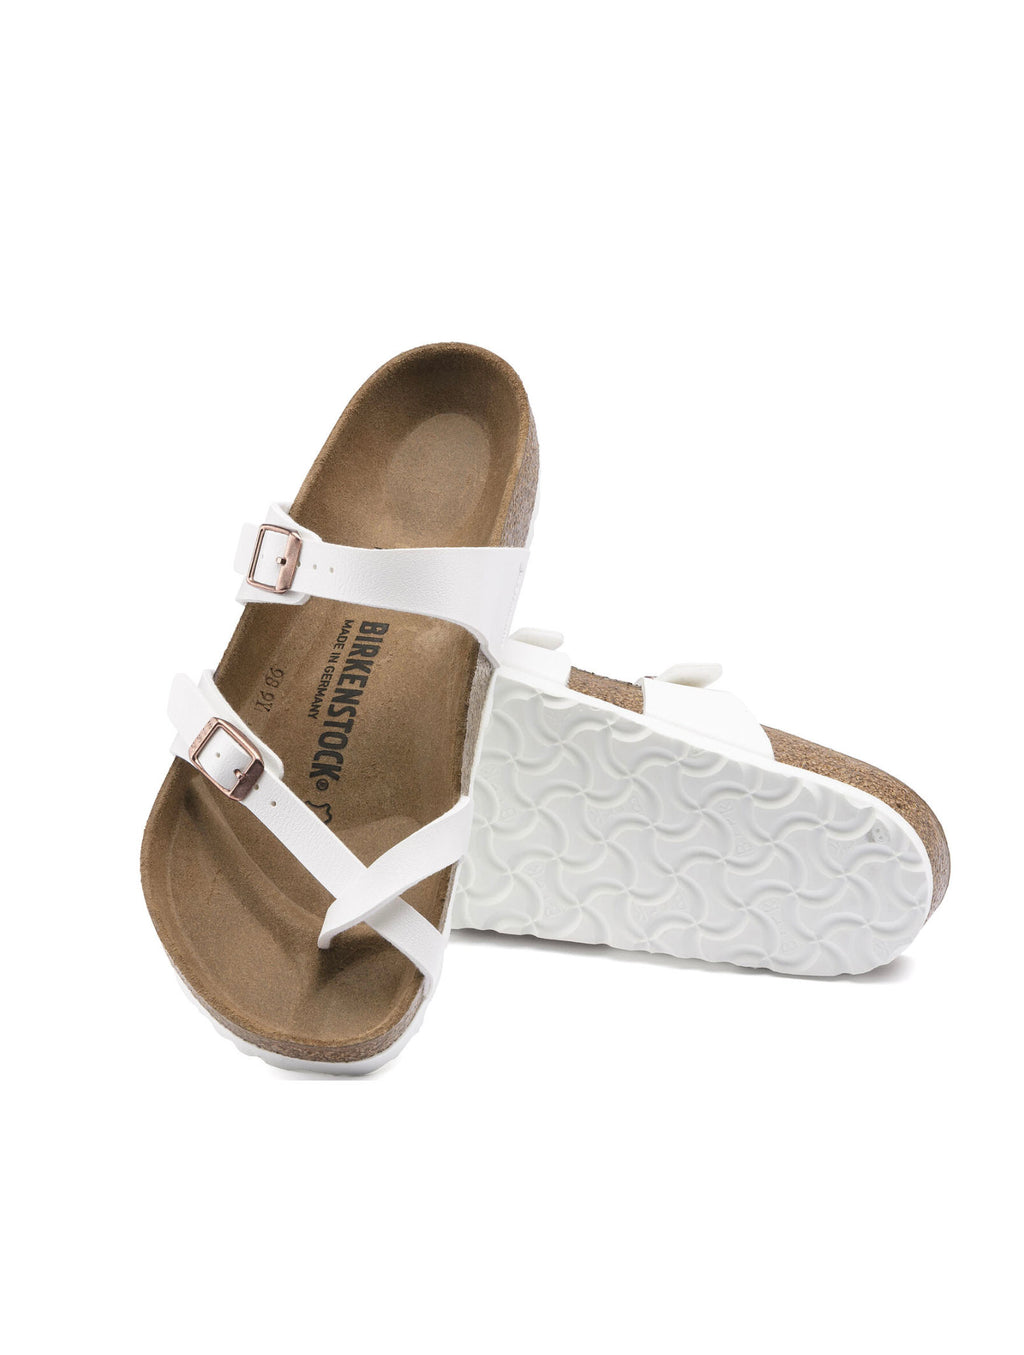 Birkenstock Mayari in White